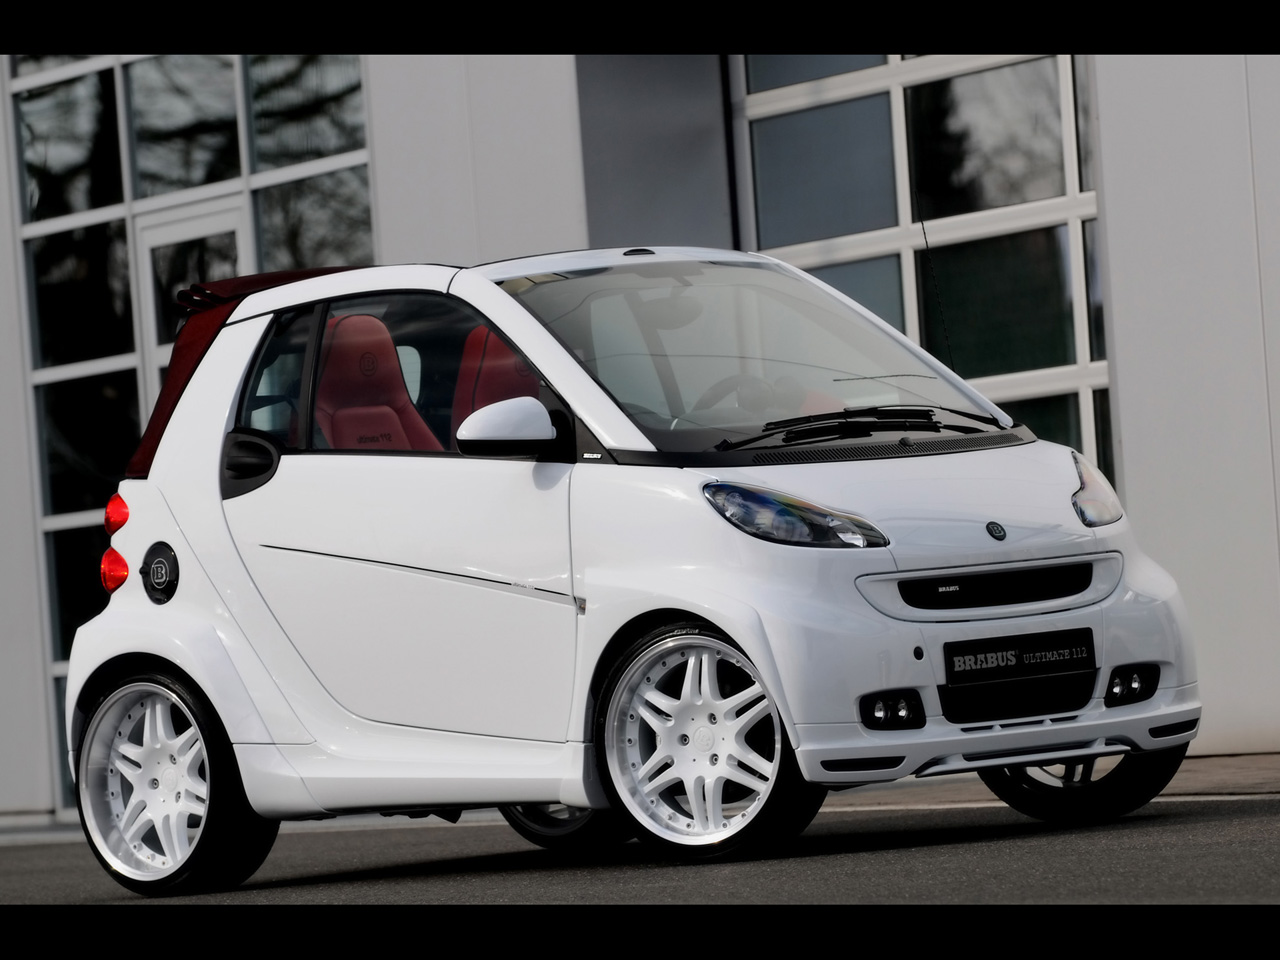 Mercedes-benz smart photo - 4